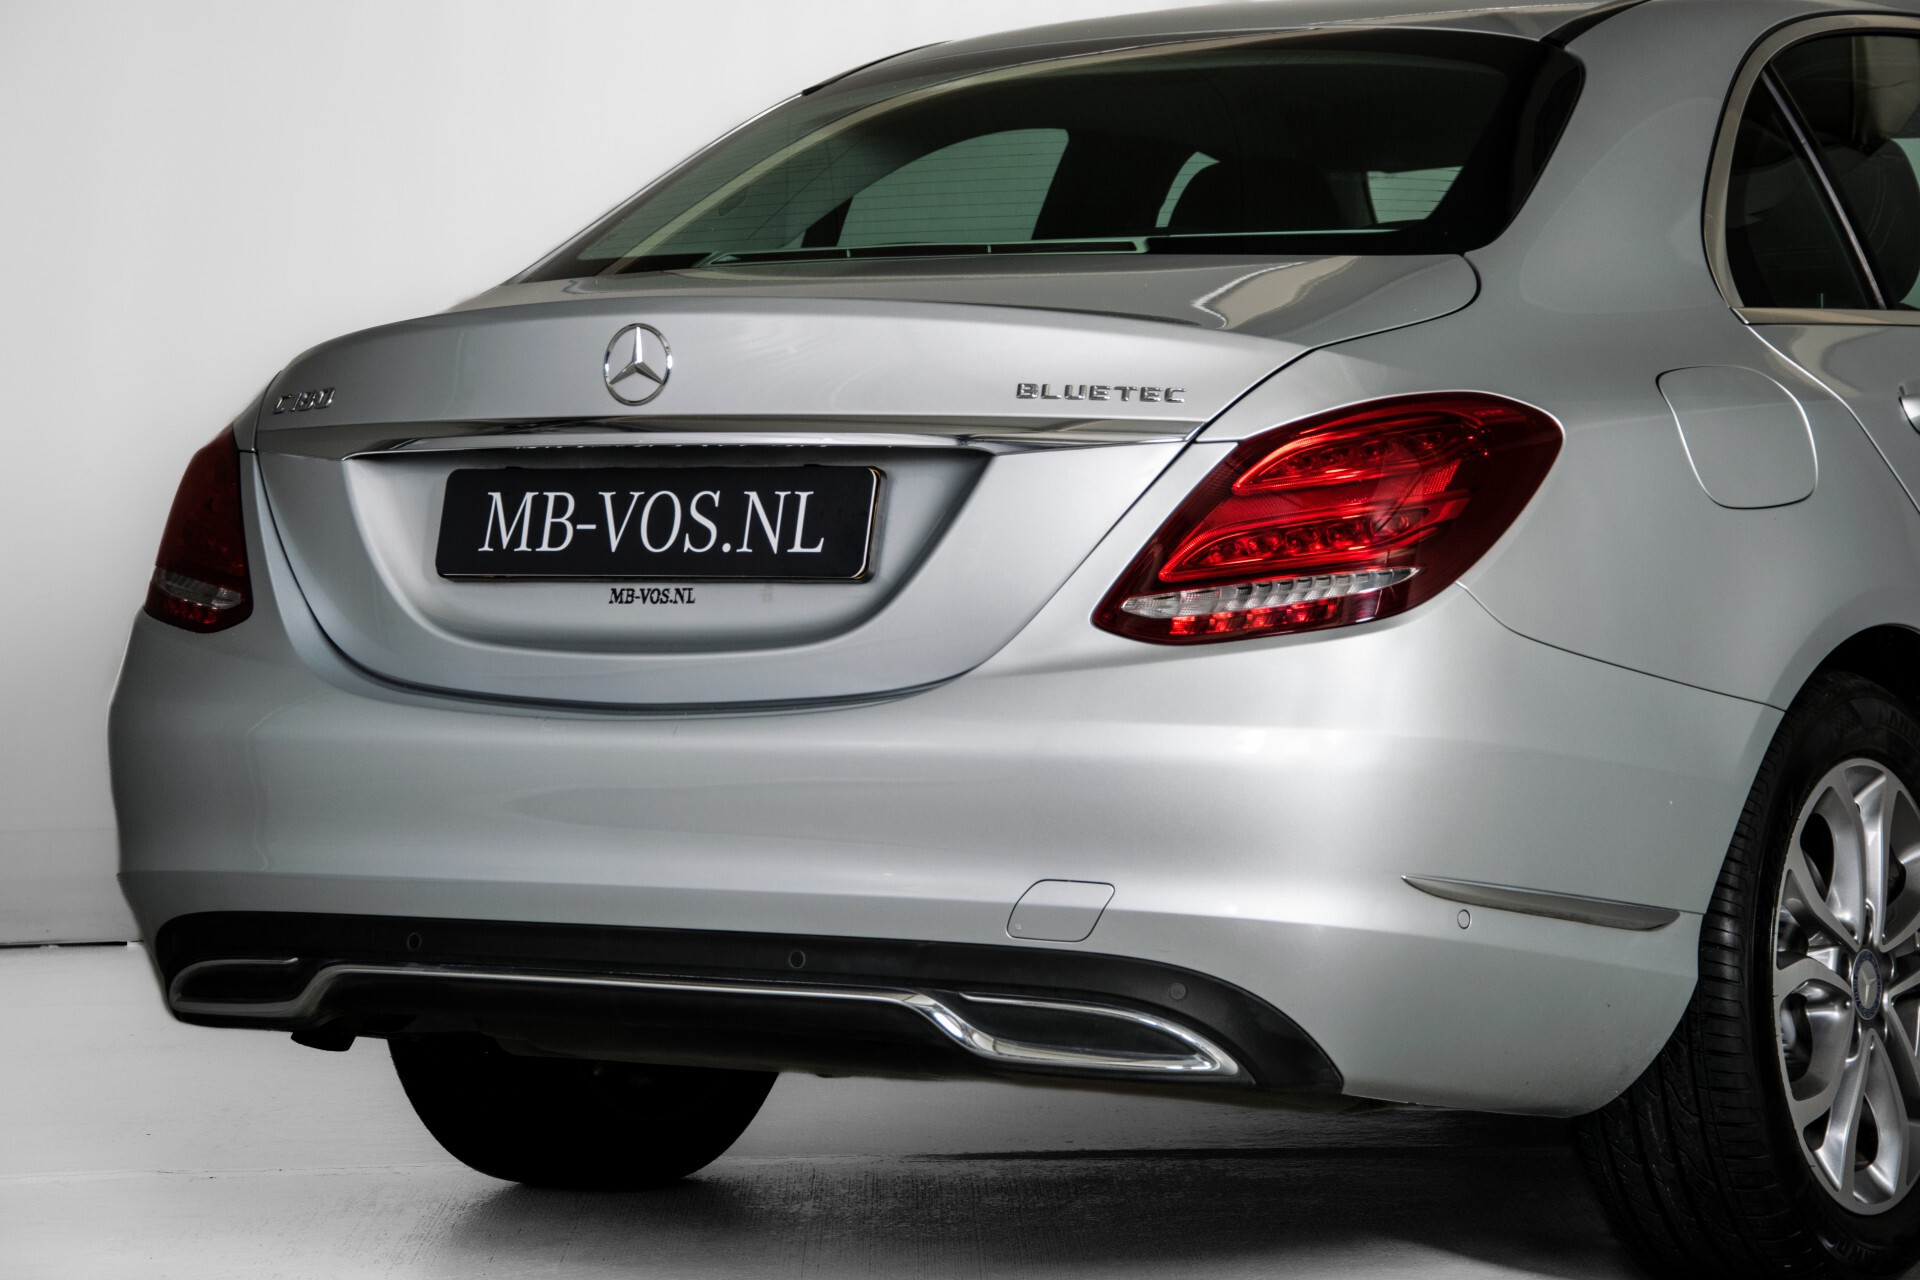 Mercedes-Benz C-Klasse 180 Bluetec Lease Edition Intelligent Light System/Cruise Control/Navi Foto 42